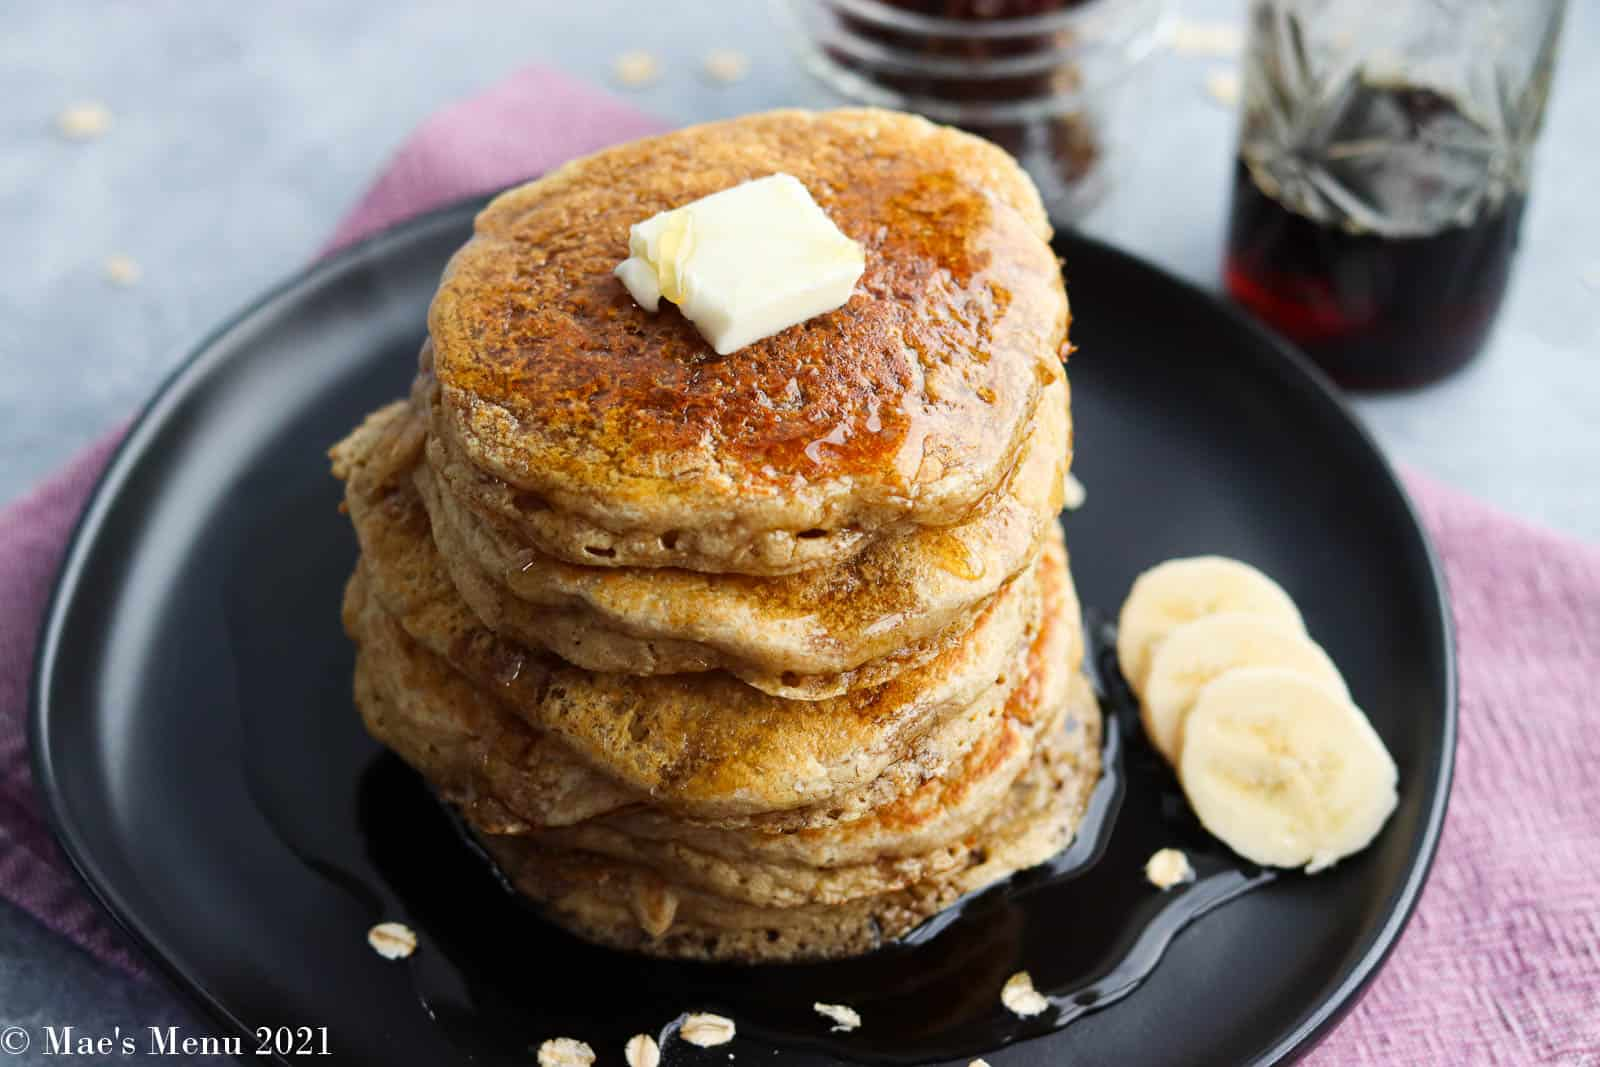 An overhead shot of the stack of pancakes on a plate